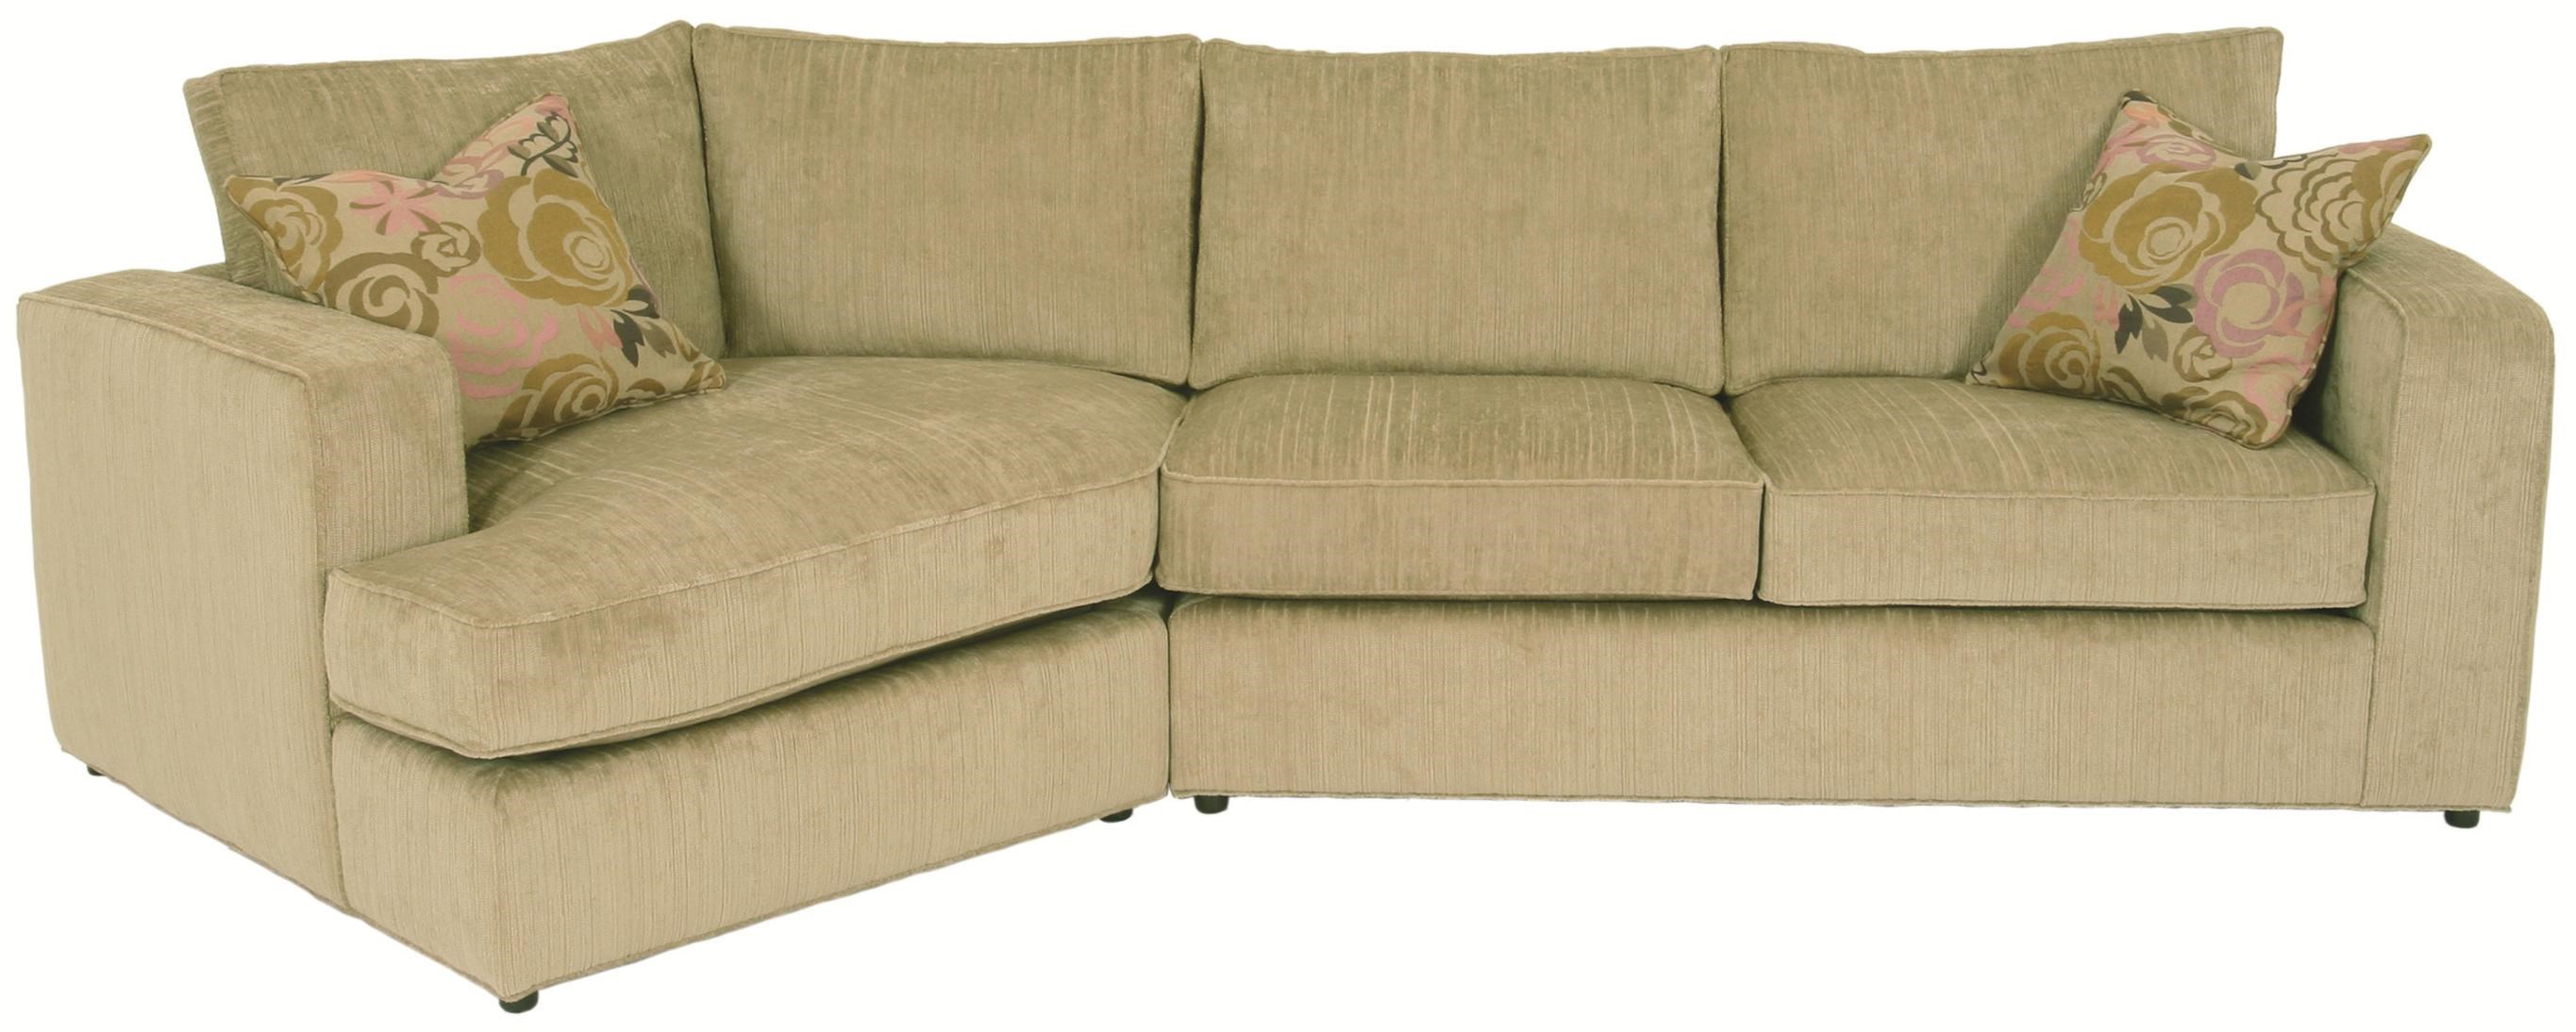 Beau Milford Sectional Sofa With Track Arms, Loose Back Cushions And Angled  Chaise By Norwalk